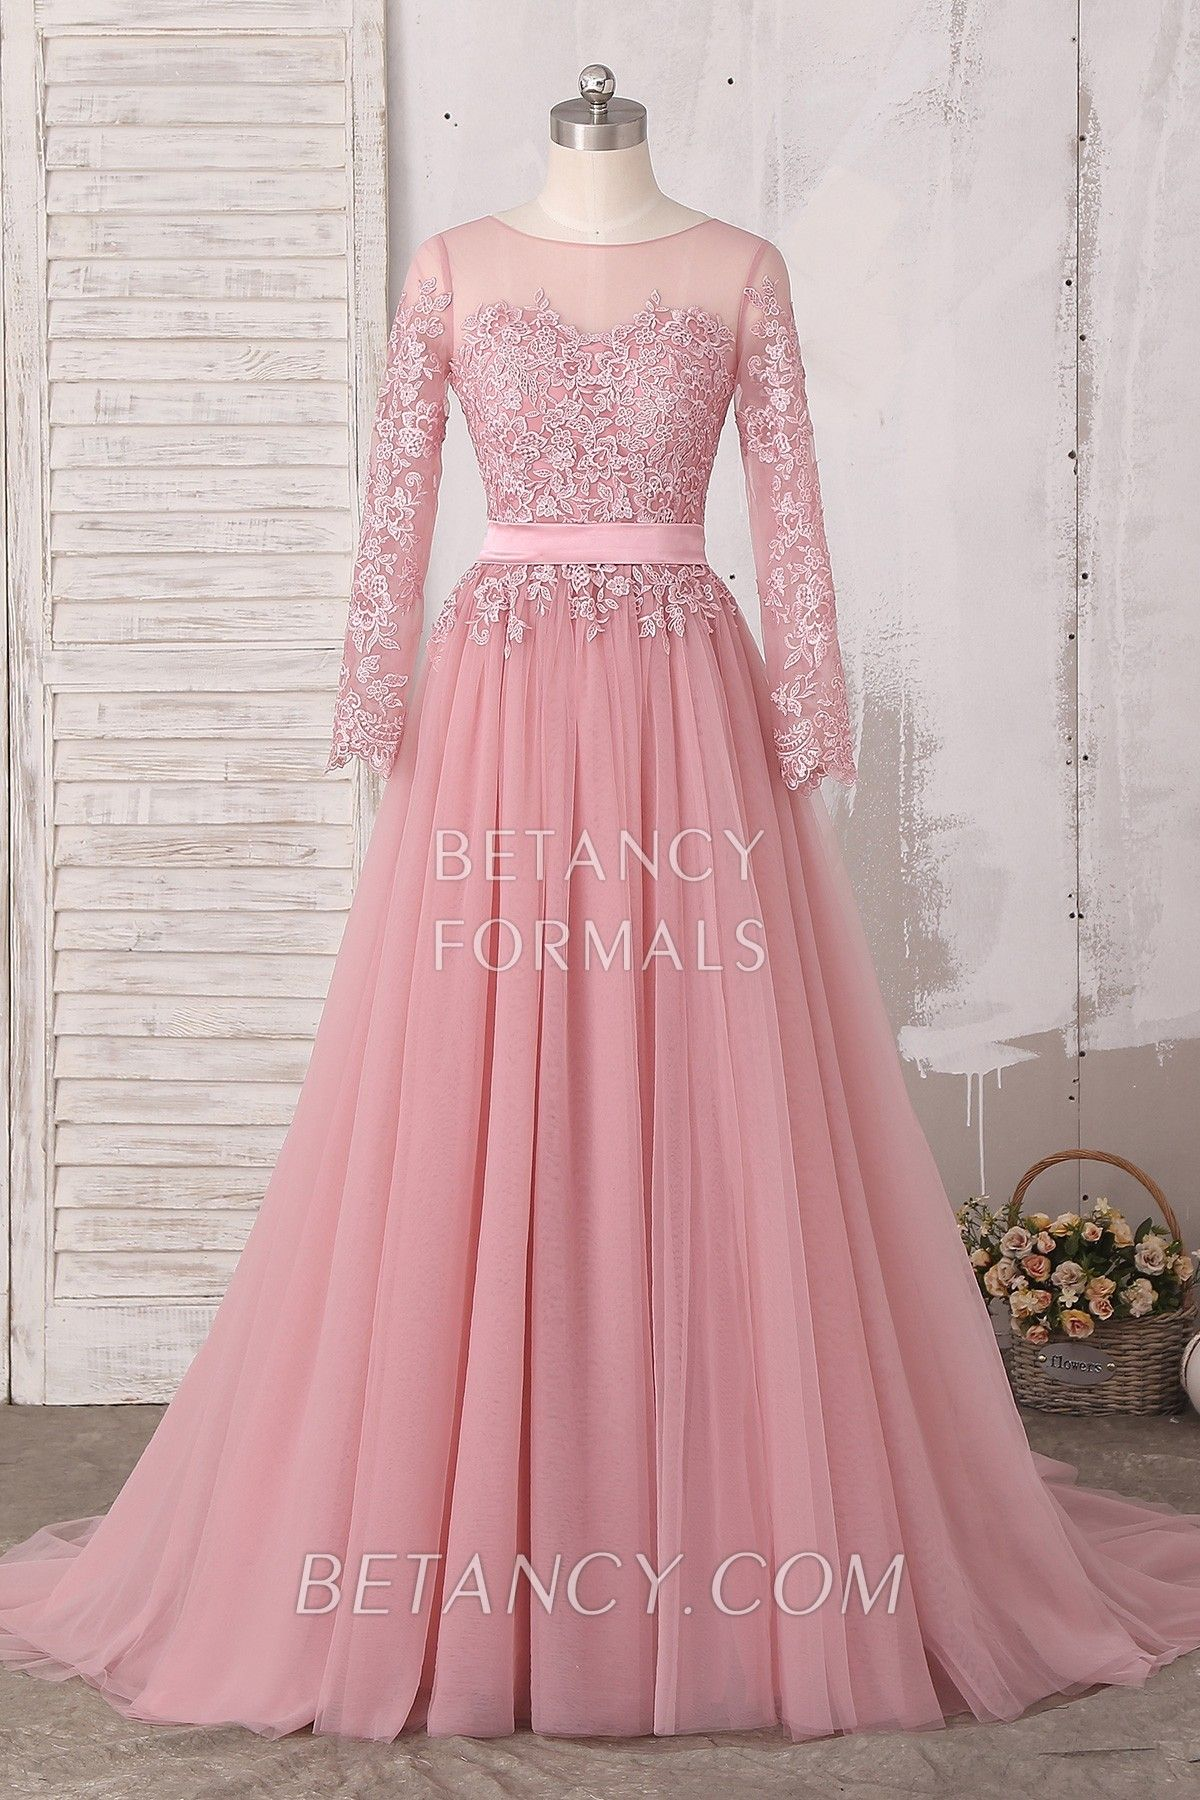 Classic And Timeless Elegant Dusty Pink Tulle Full Length A Line Formal Gown With Sweep Train The Lace Appliqu Long Sleeve Formal Gowns Gowns Tulle Prom Dress [ 1800 x 1200 Pixel ]